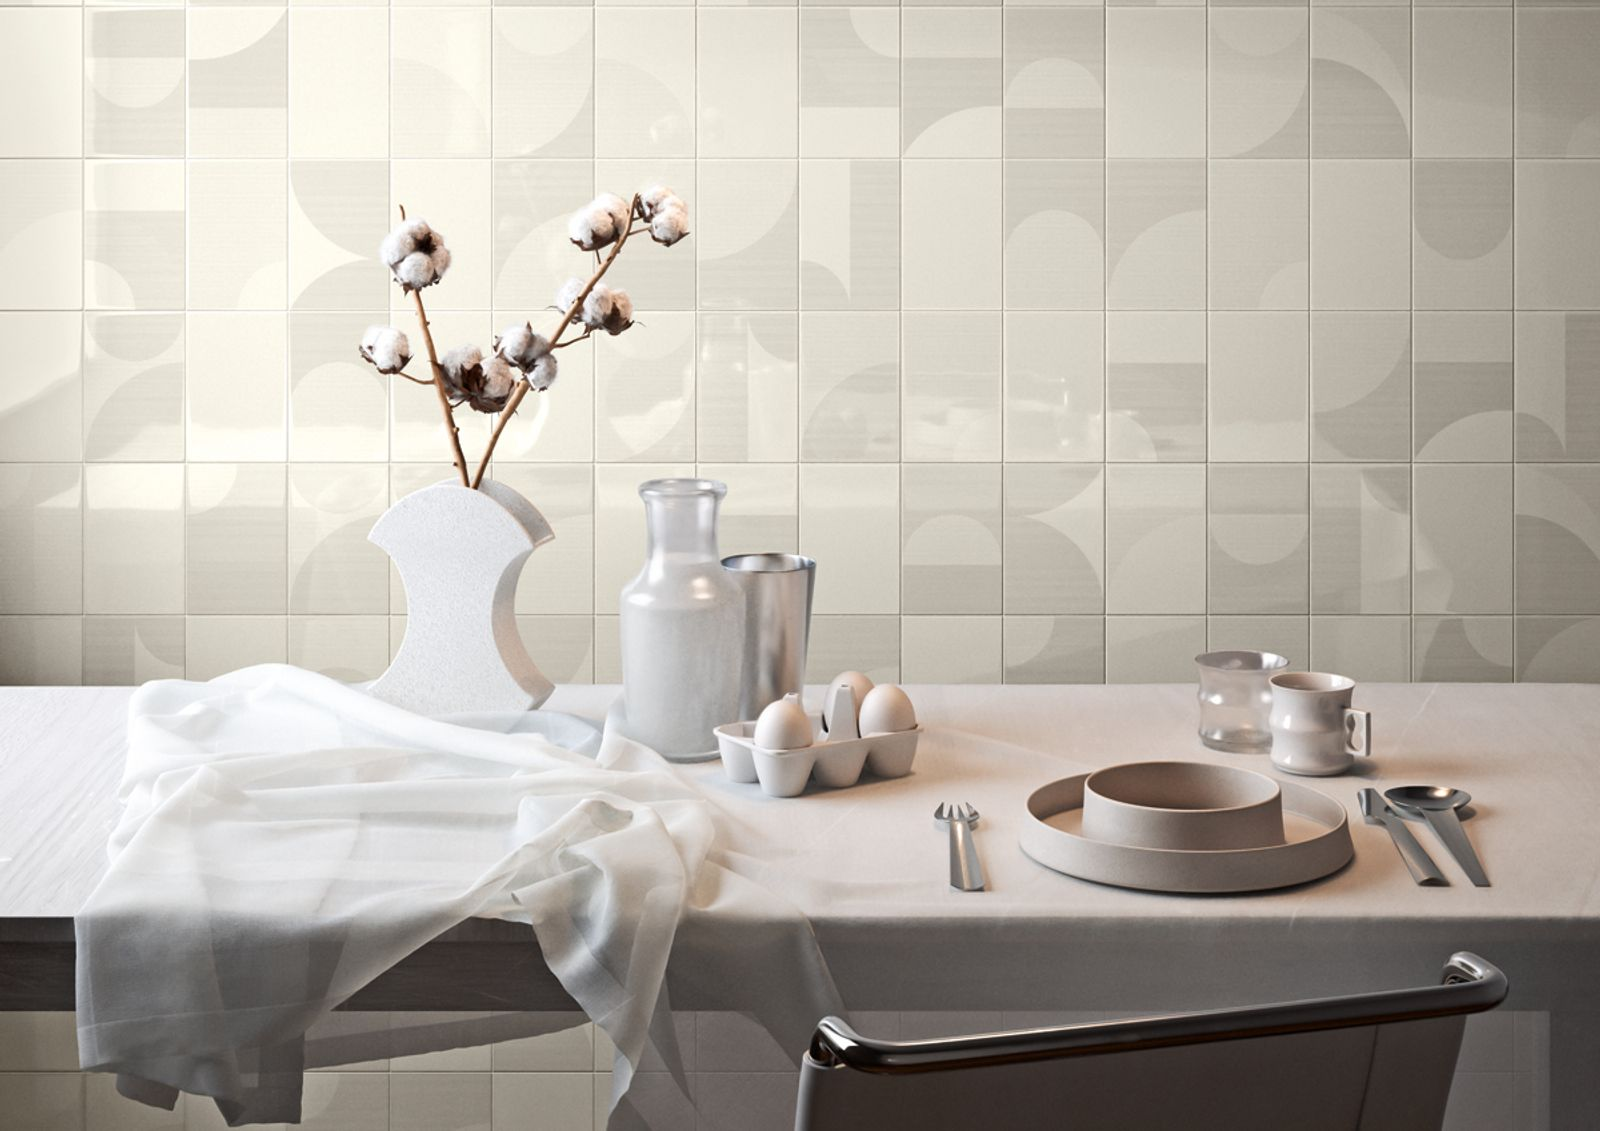 Bathroom wall tiles from B&M